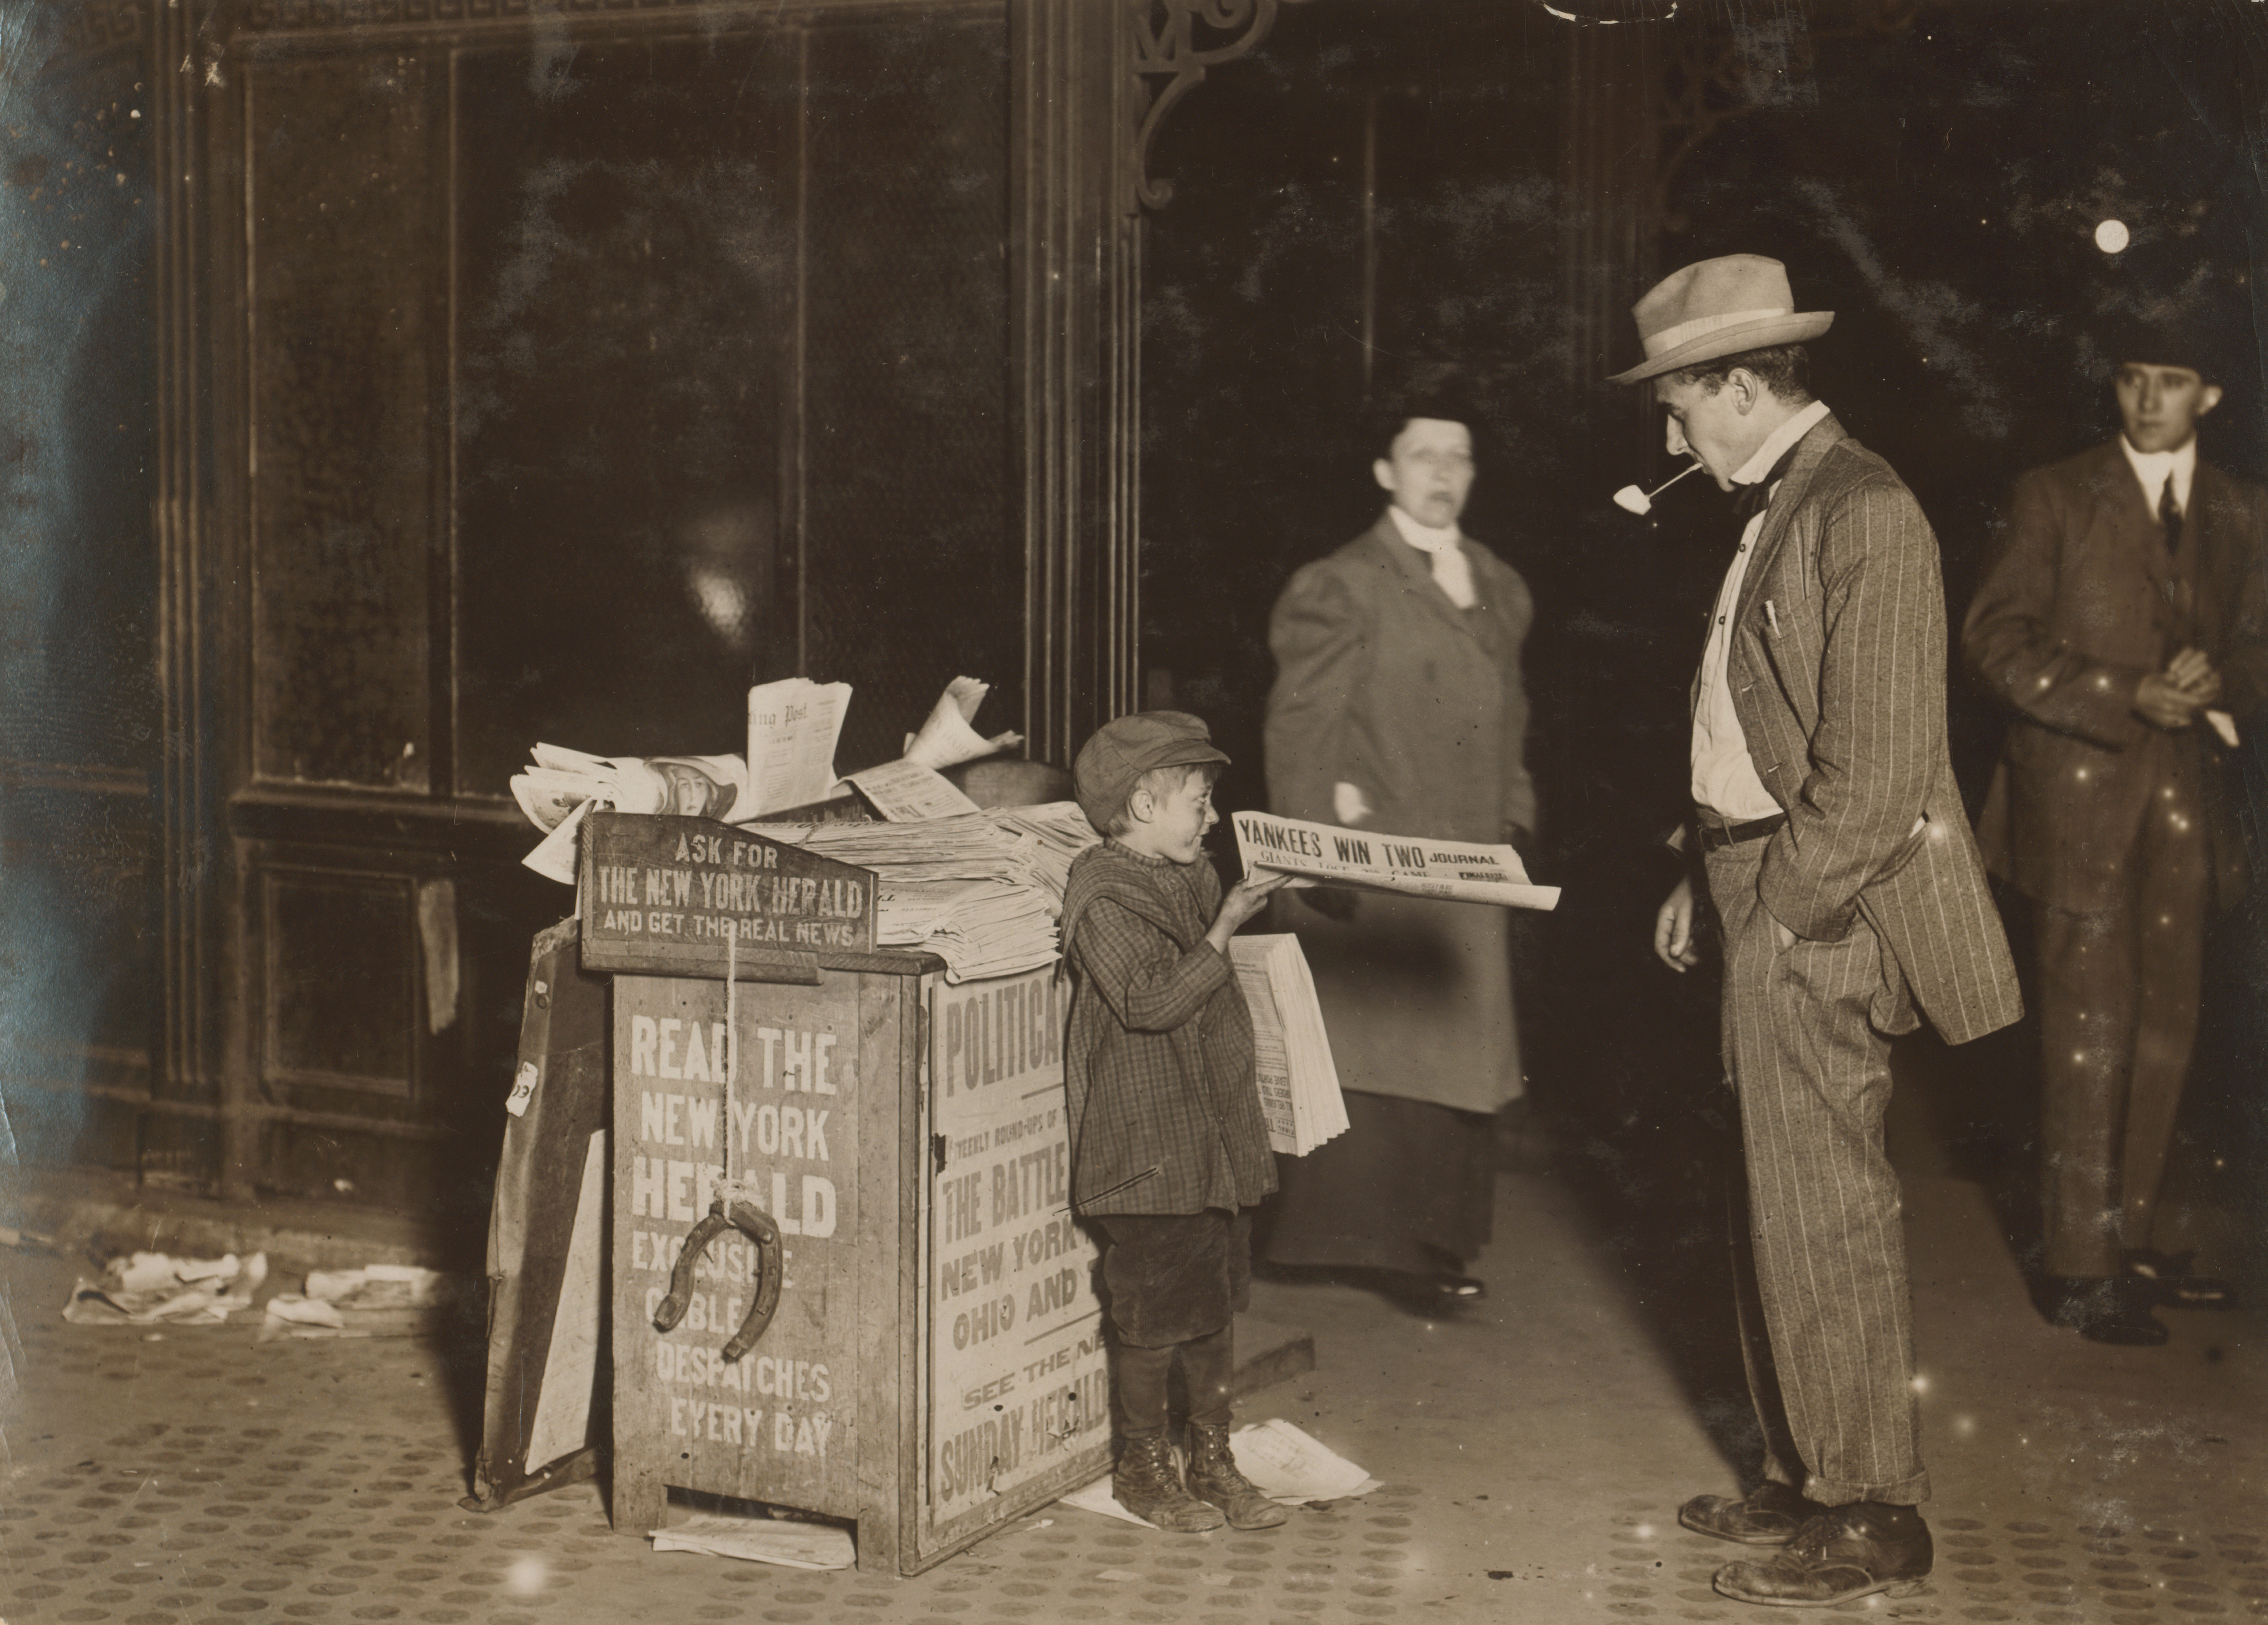 Child Labor and Poverty In New York - 1910